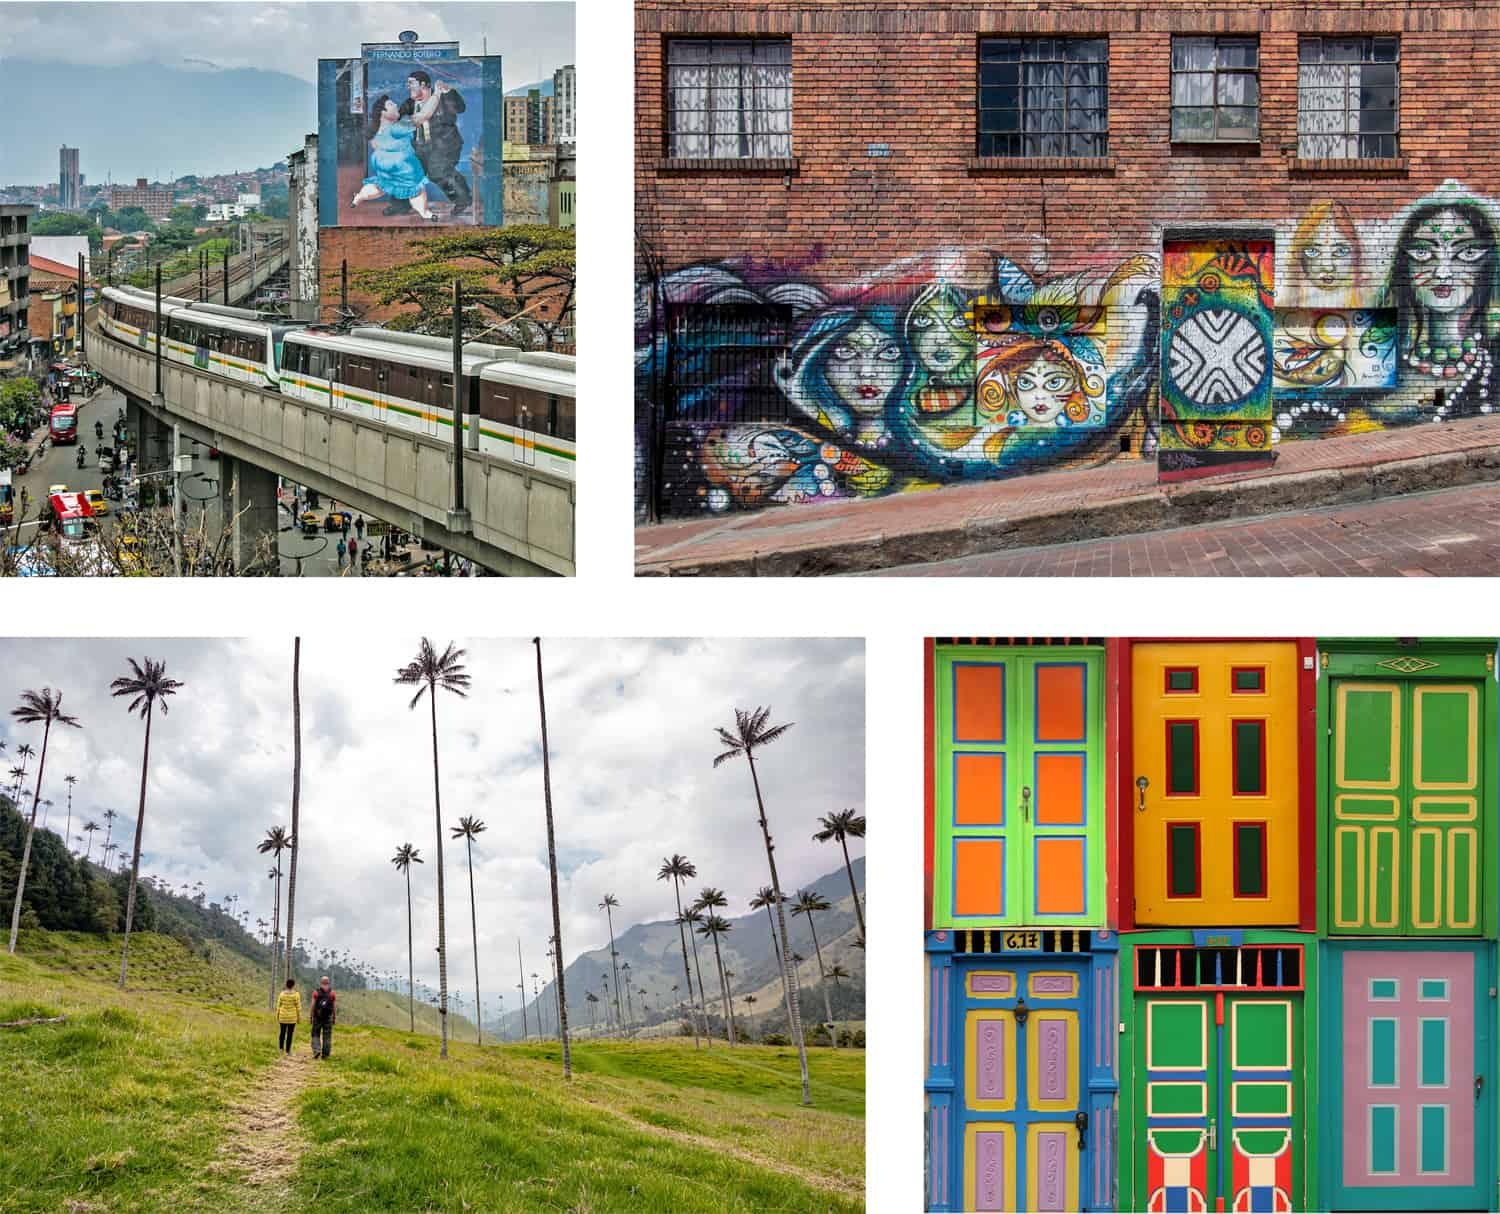 Random images from Colombia featuring graffiti on a wall, the Medellin metro, palm trees in a valley, and painted doors.